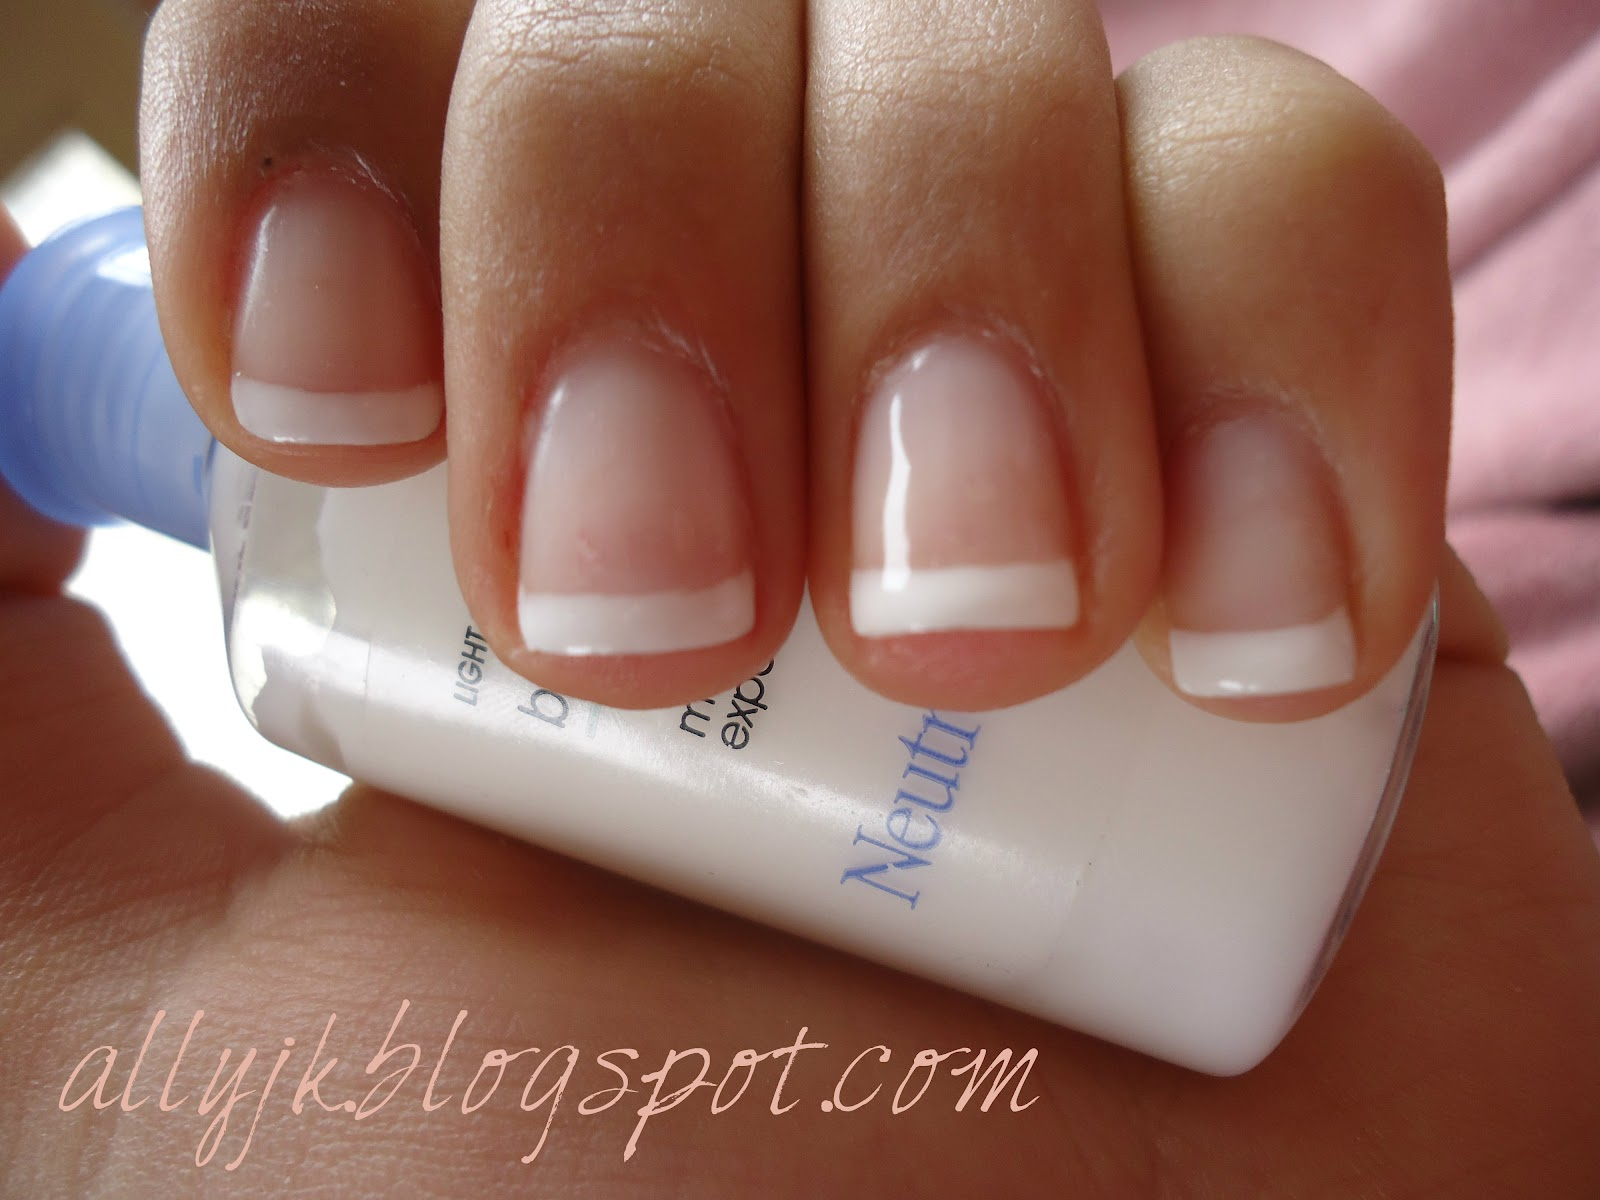 Ally's Nails: A Basic French Manicure